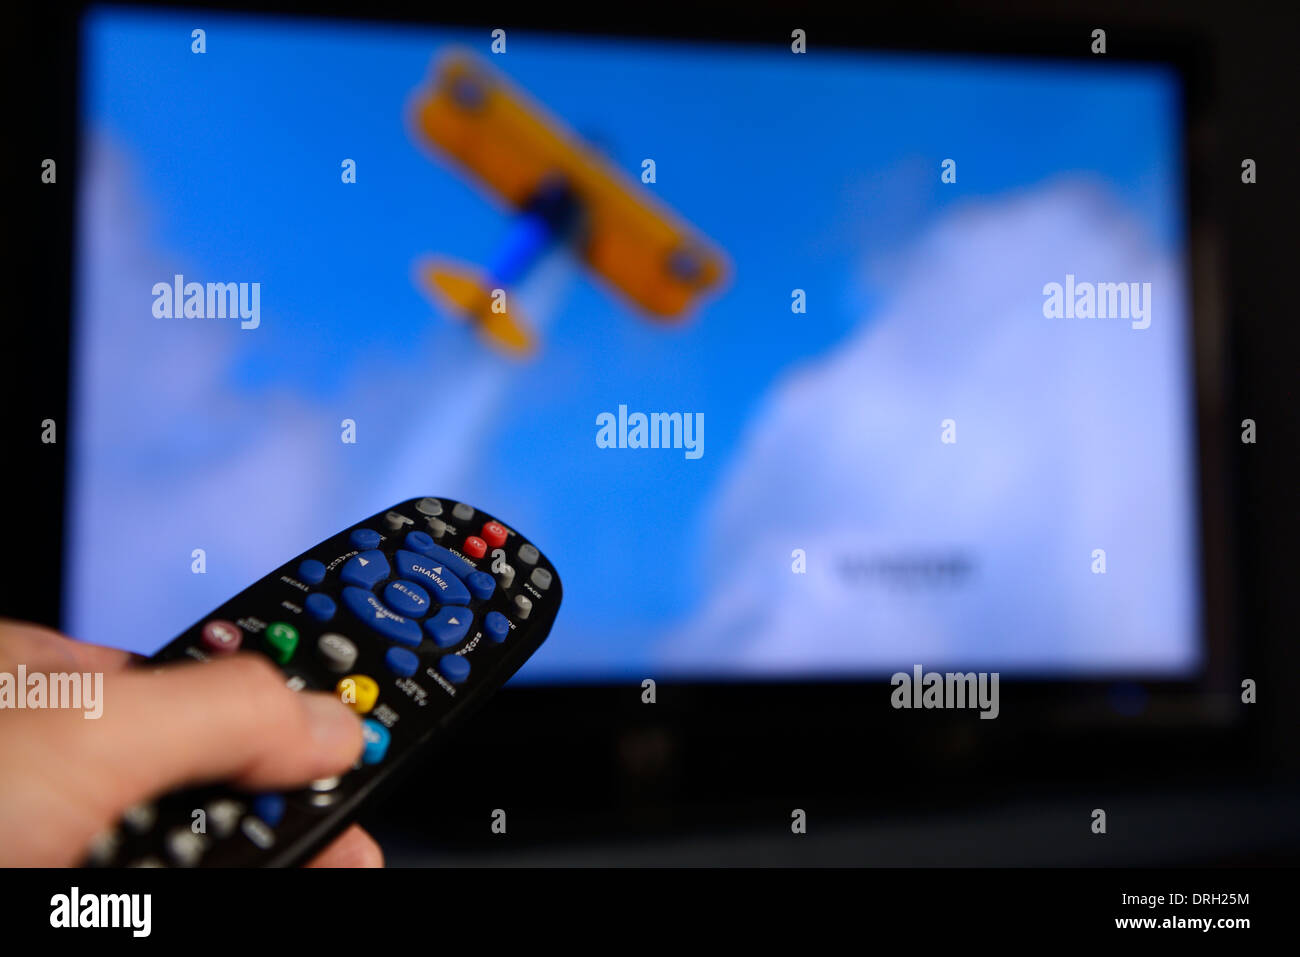 Man pointing a universal remote control towards a television screen to change the program on the entertainment system - Stock Image